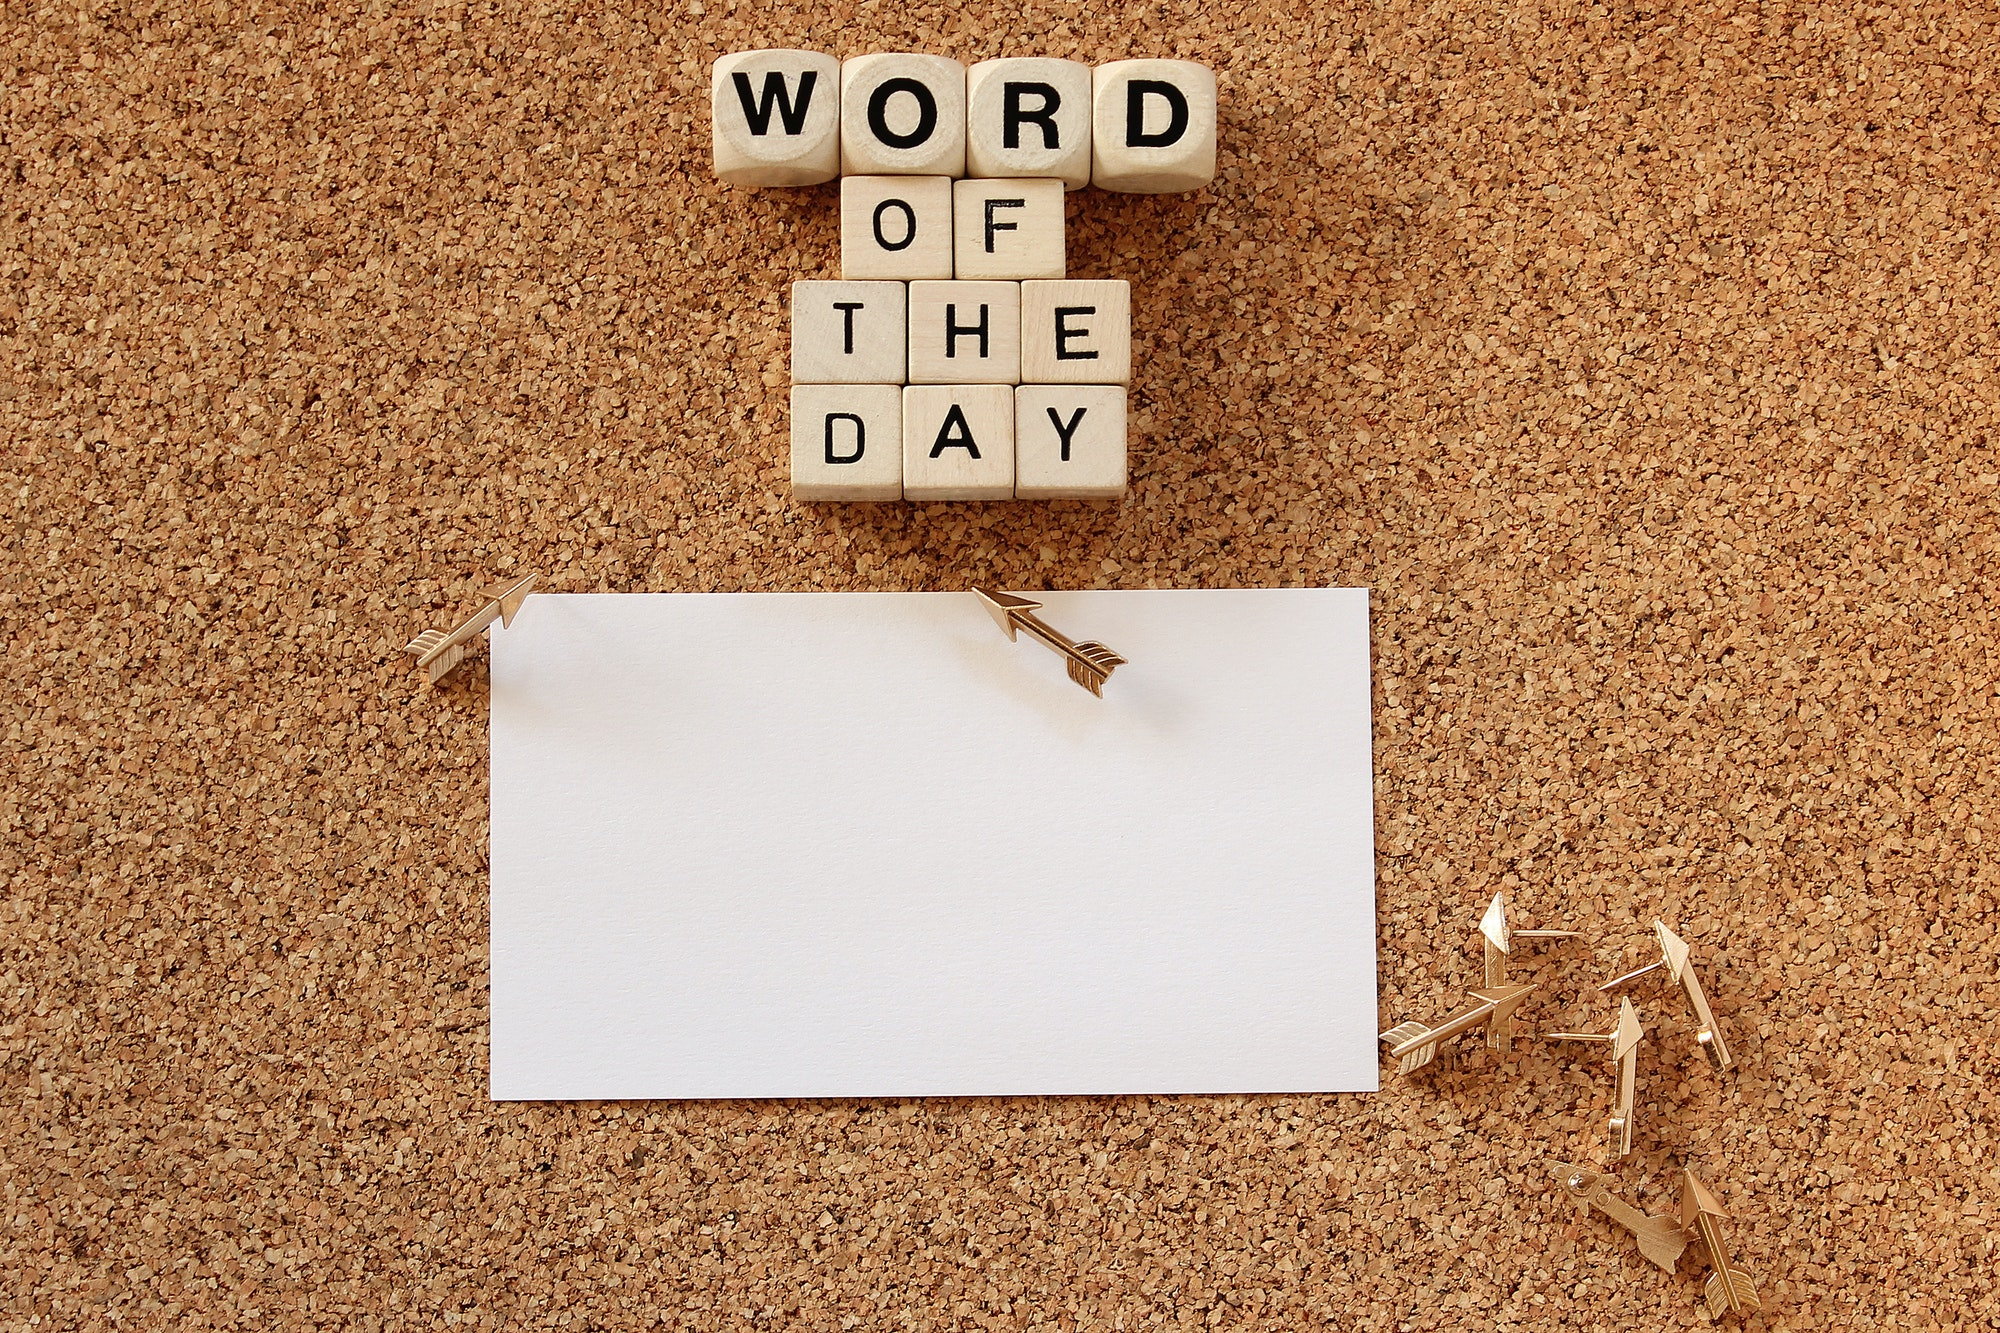 Word of the day concept